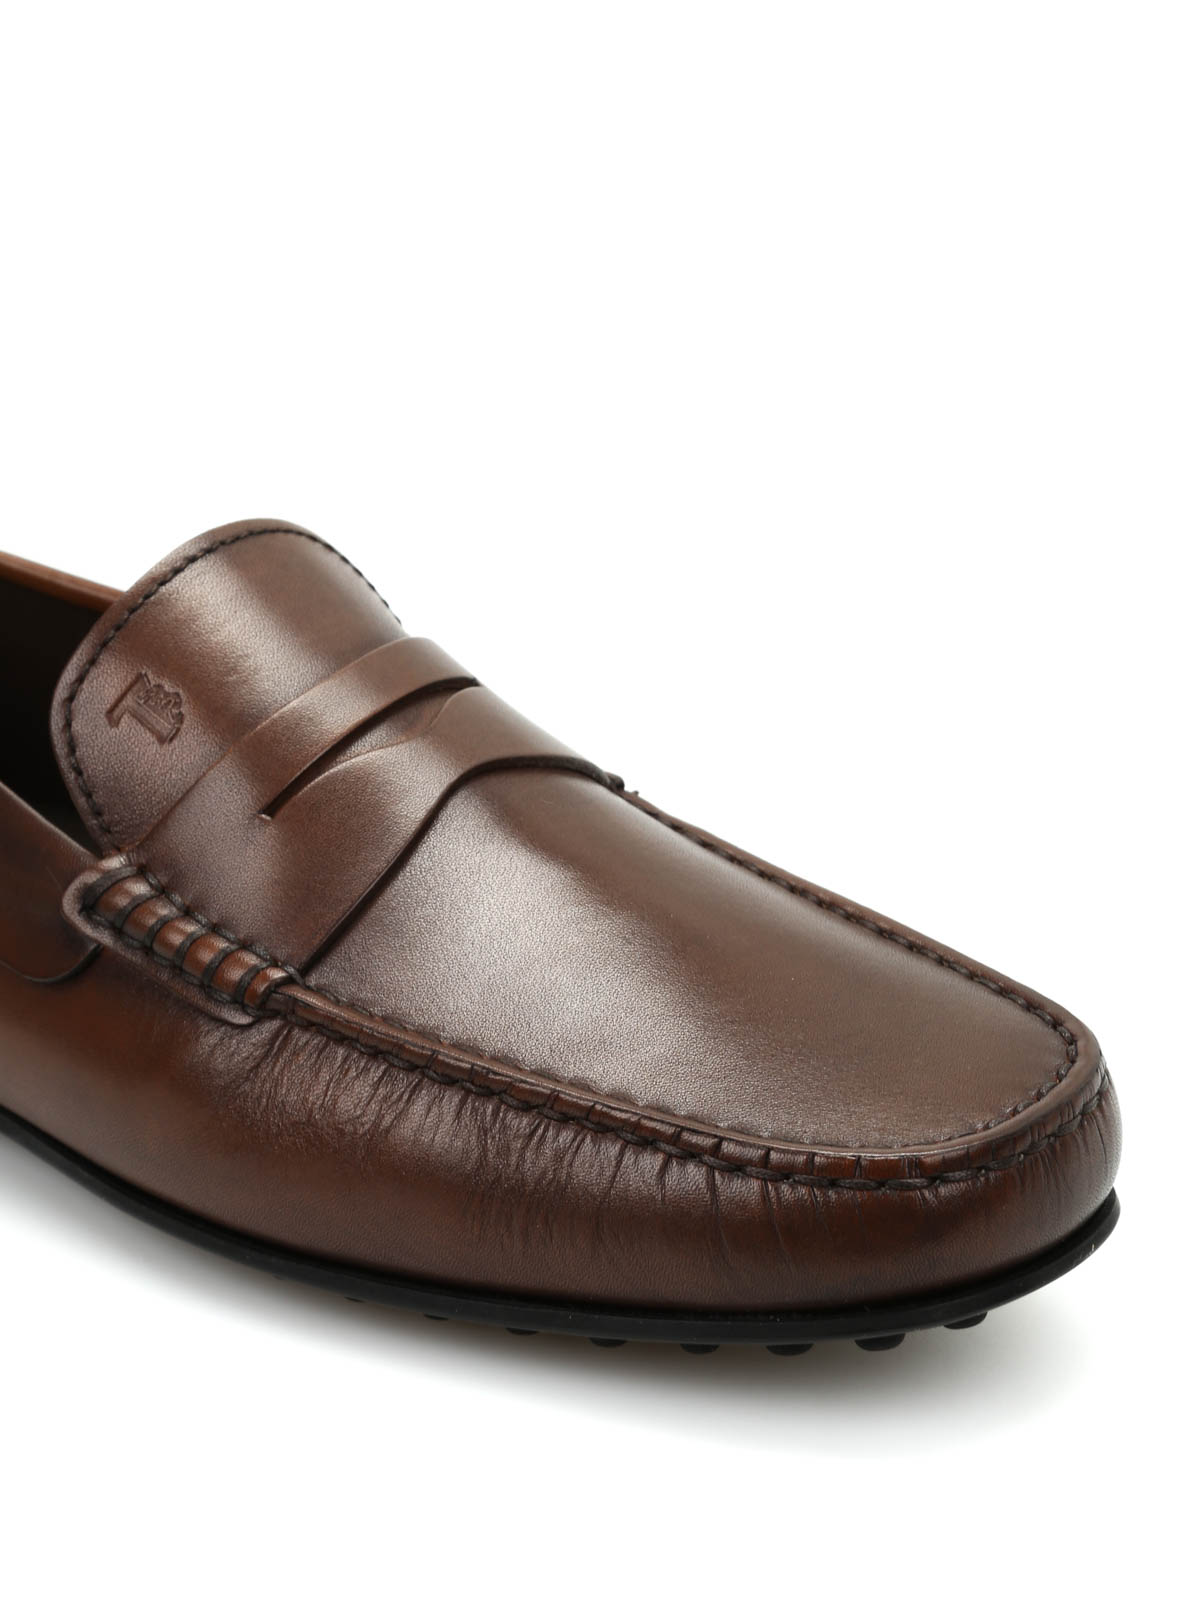 City Gommino Loafers in Leather Tod's Free Shipping Clearance Discount Choice Cheap 2018 Newest Clearance Fast Delivery jcThb